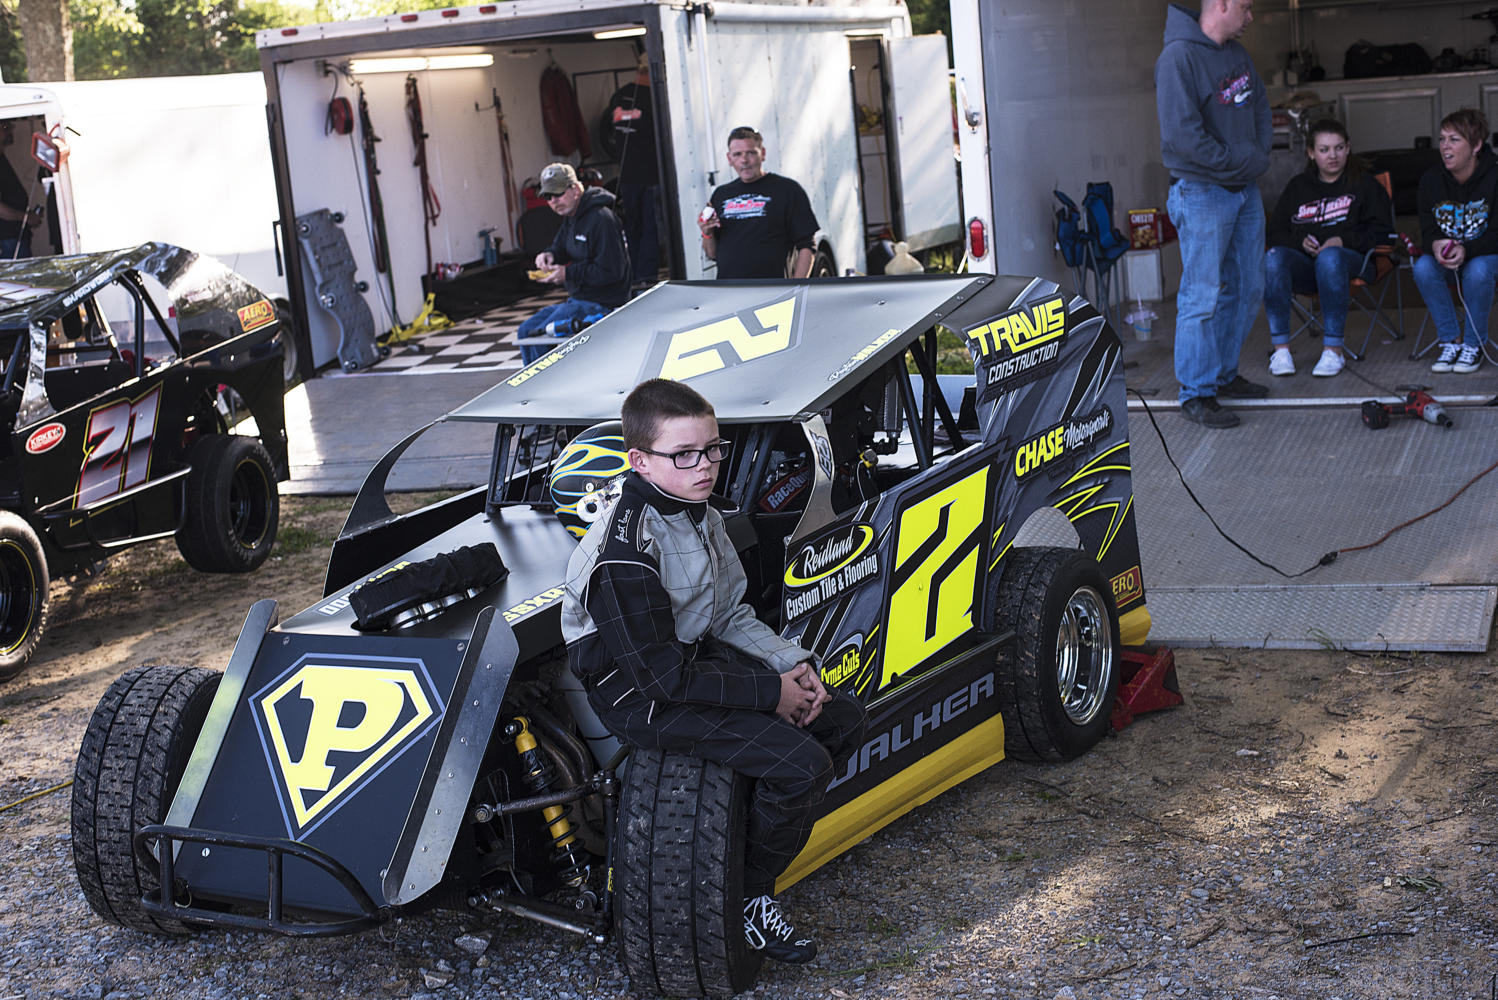 Second-generation racer Peyton Walker, 12, of Paducah, Kentucky, sits on his car awaiting the start of hot-laps Saturday, May 6, 2017, at the Southern Illinois Raceway in Marion.